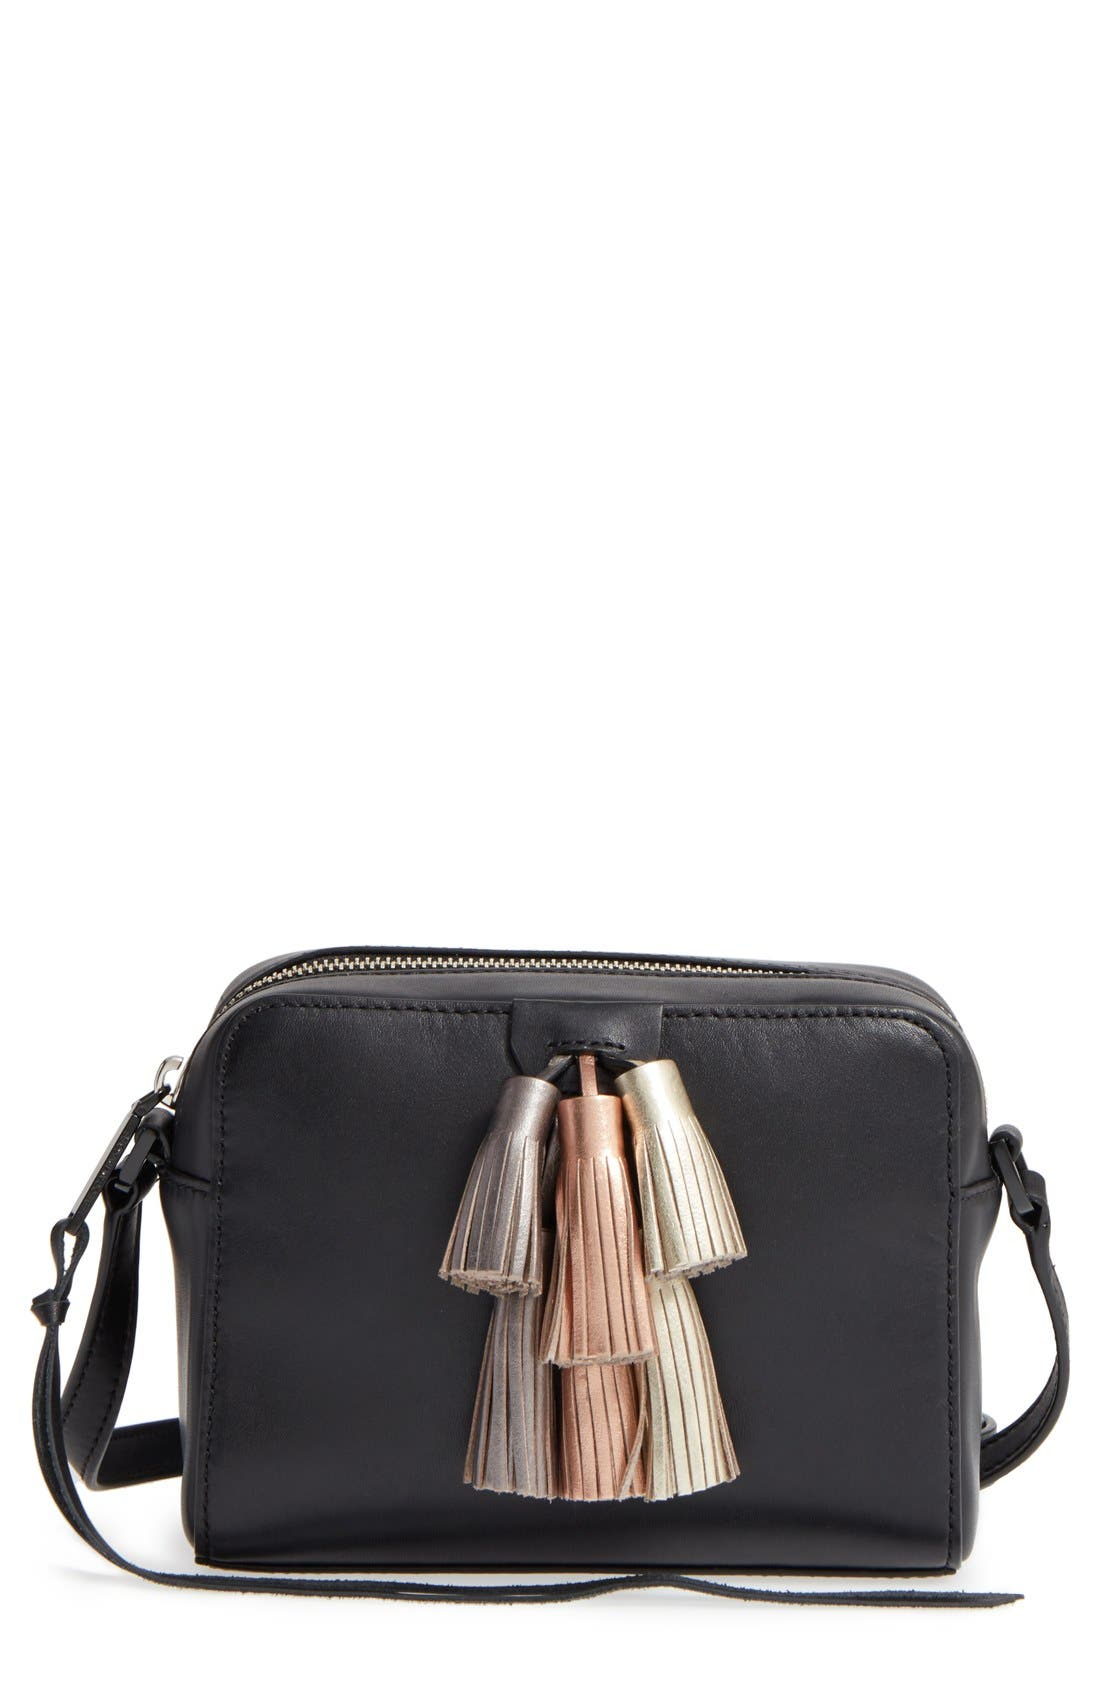 Main Image - Rebecca Minkoff 'Mini Sofia' Crossbody Bag